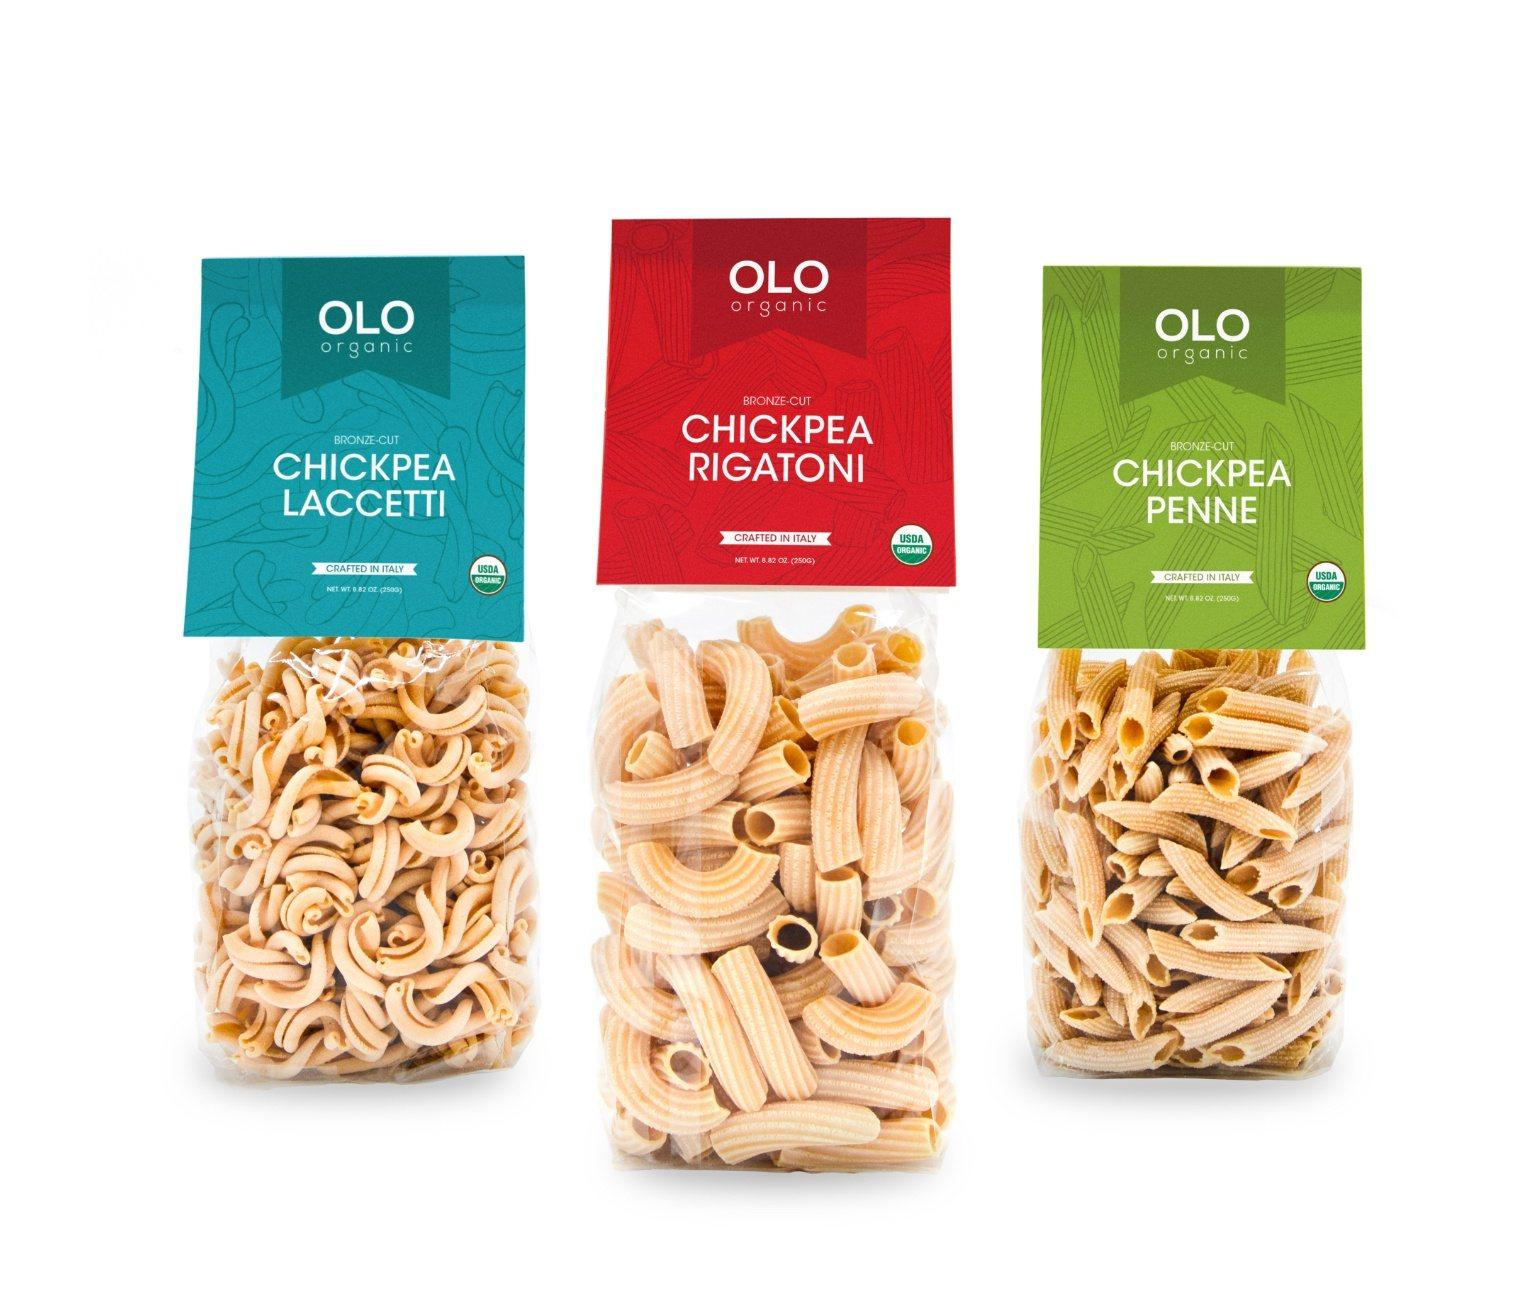 Three bags of pasta in clear bags with colorful labels